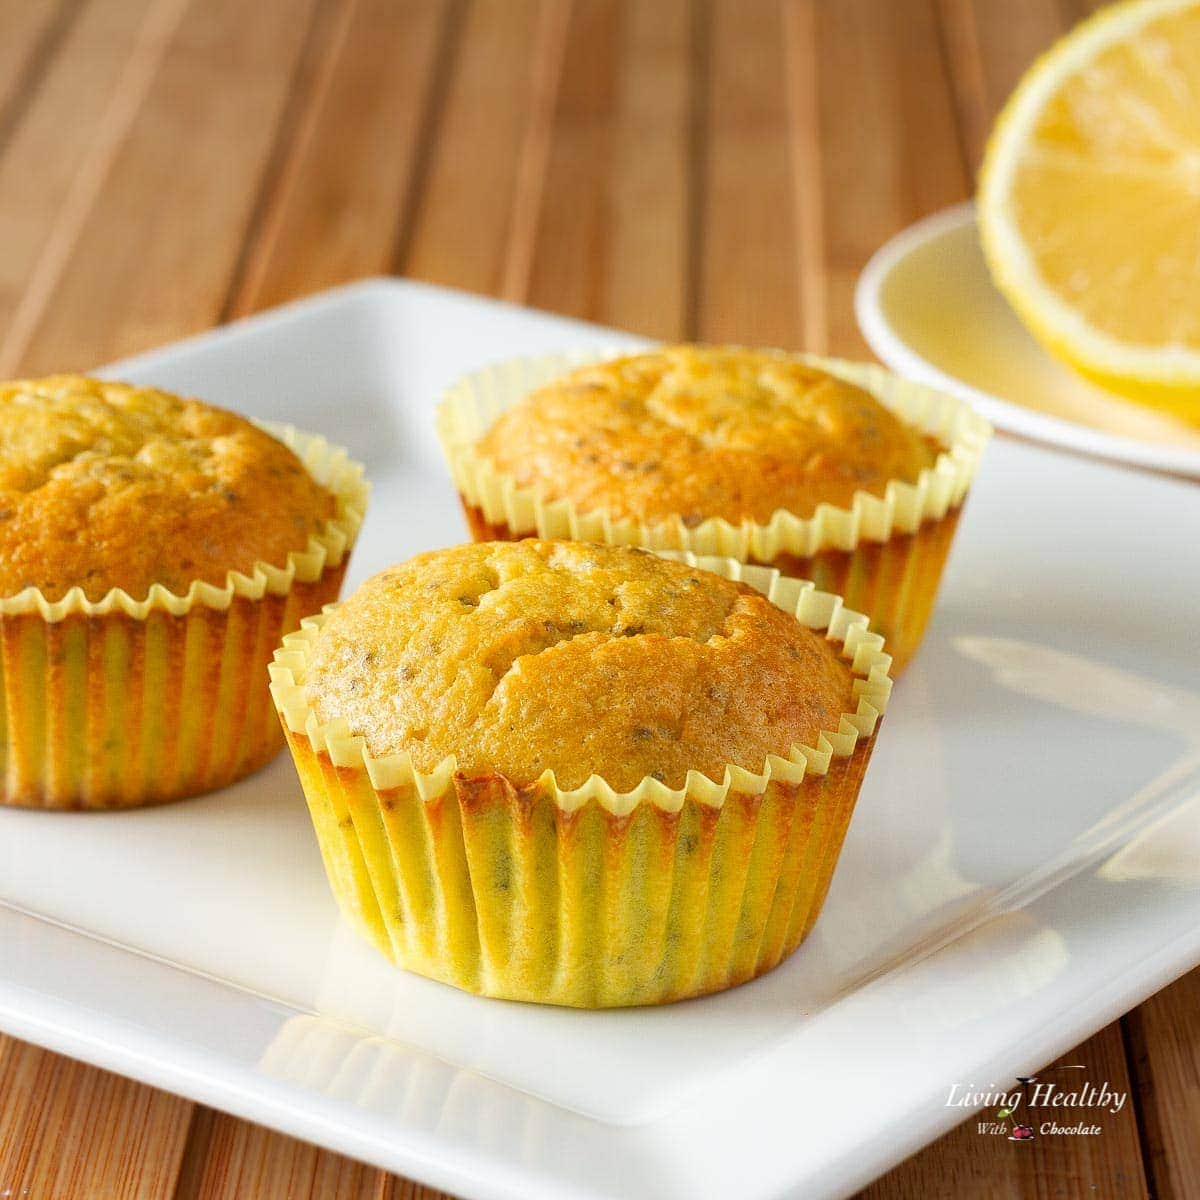 three lemon chia seed muffins on a white plate